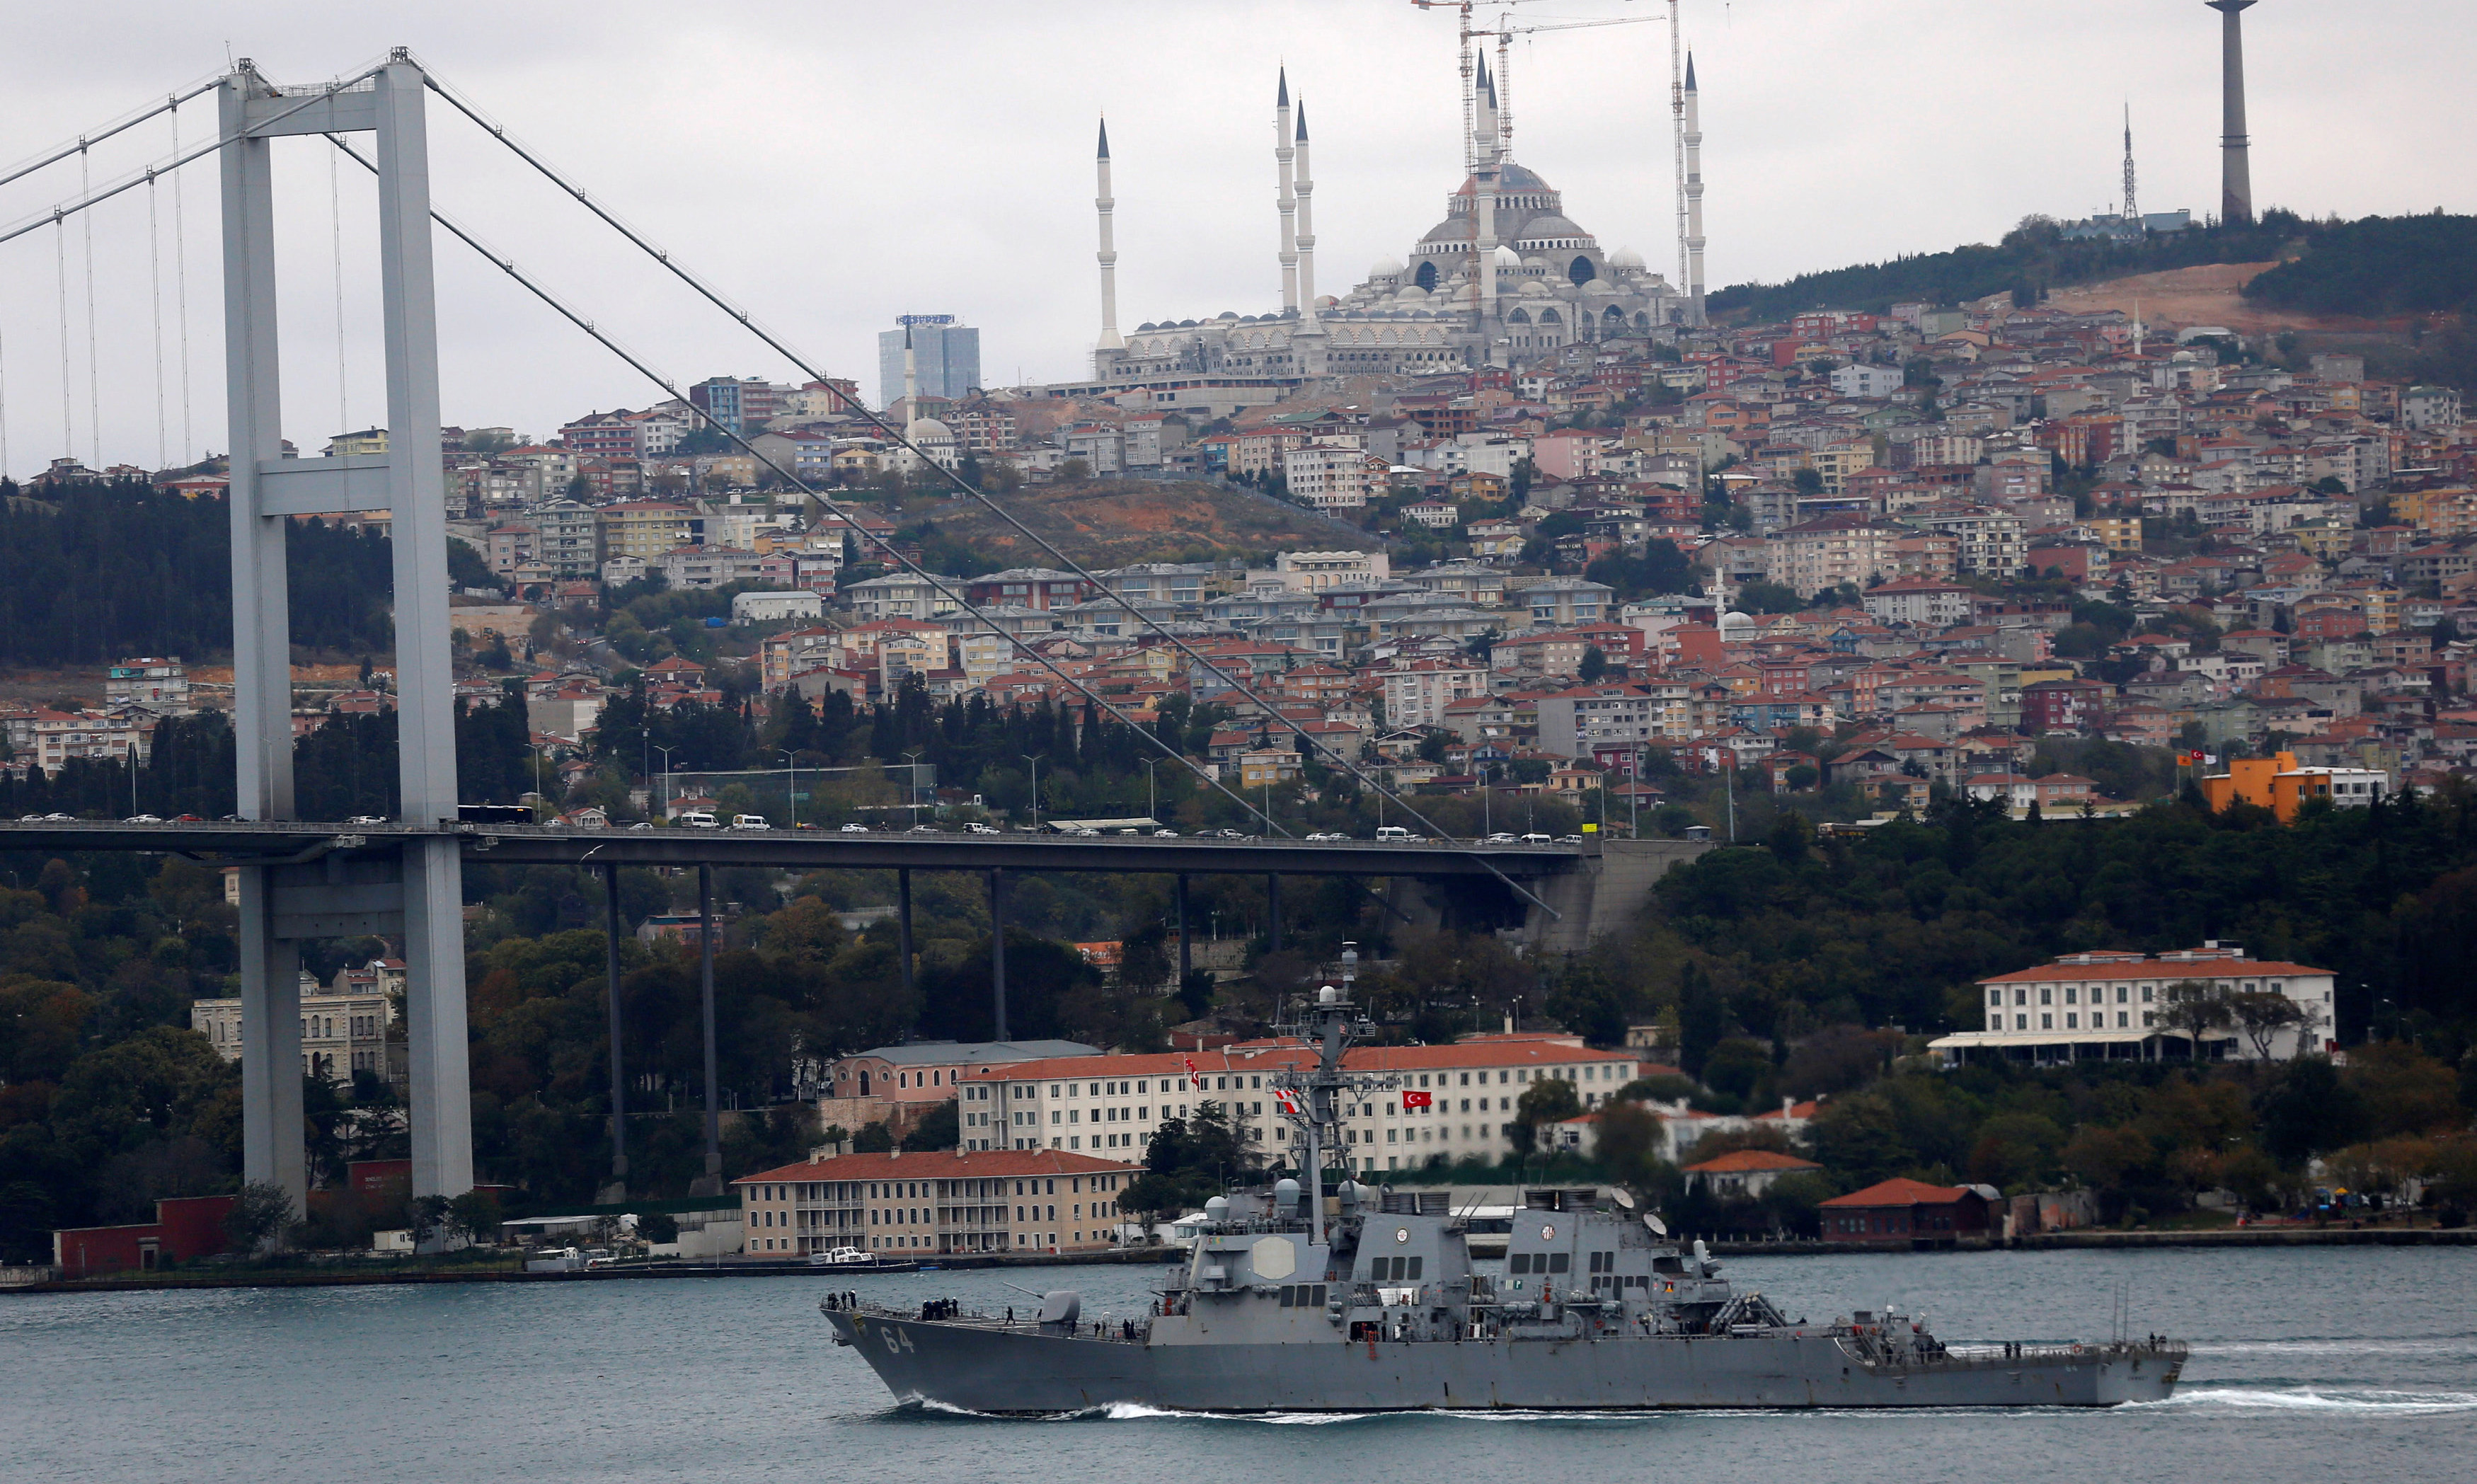 The U.S. Navy destroyer USS Carney sets sail in the Bosphorus, on its way to the Black Sea, in Istanbul, Turkey, October 24, 2016. REUTERS/Murad Sezer